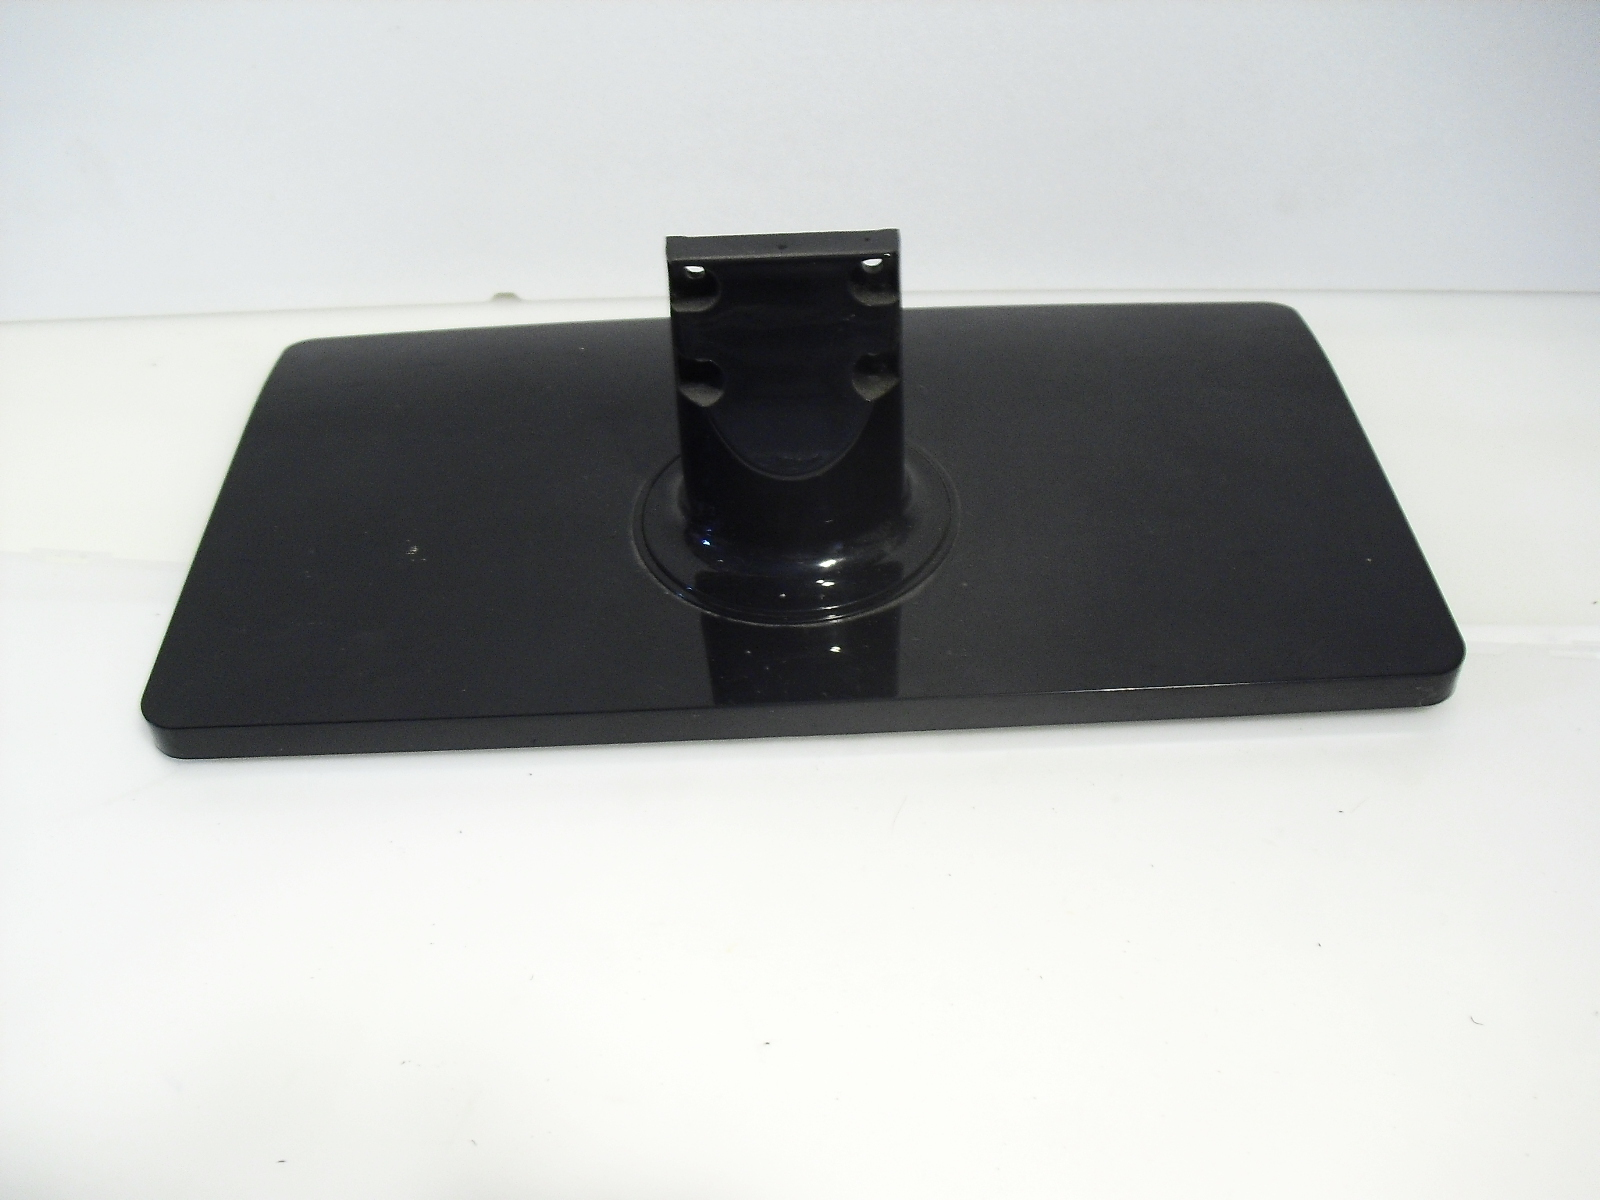 Primary image for seiki   se24ft11-d    stand  base